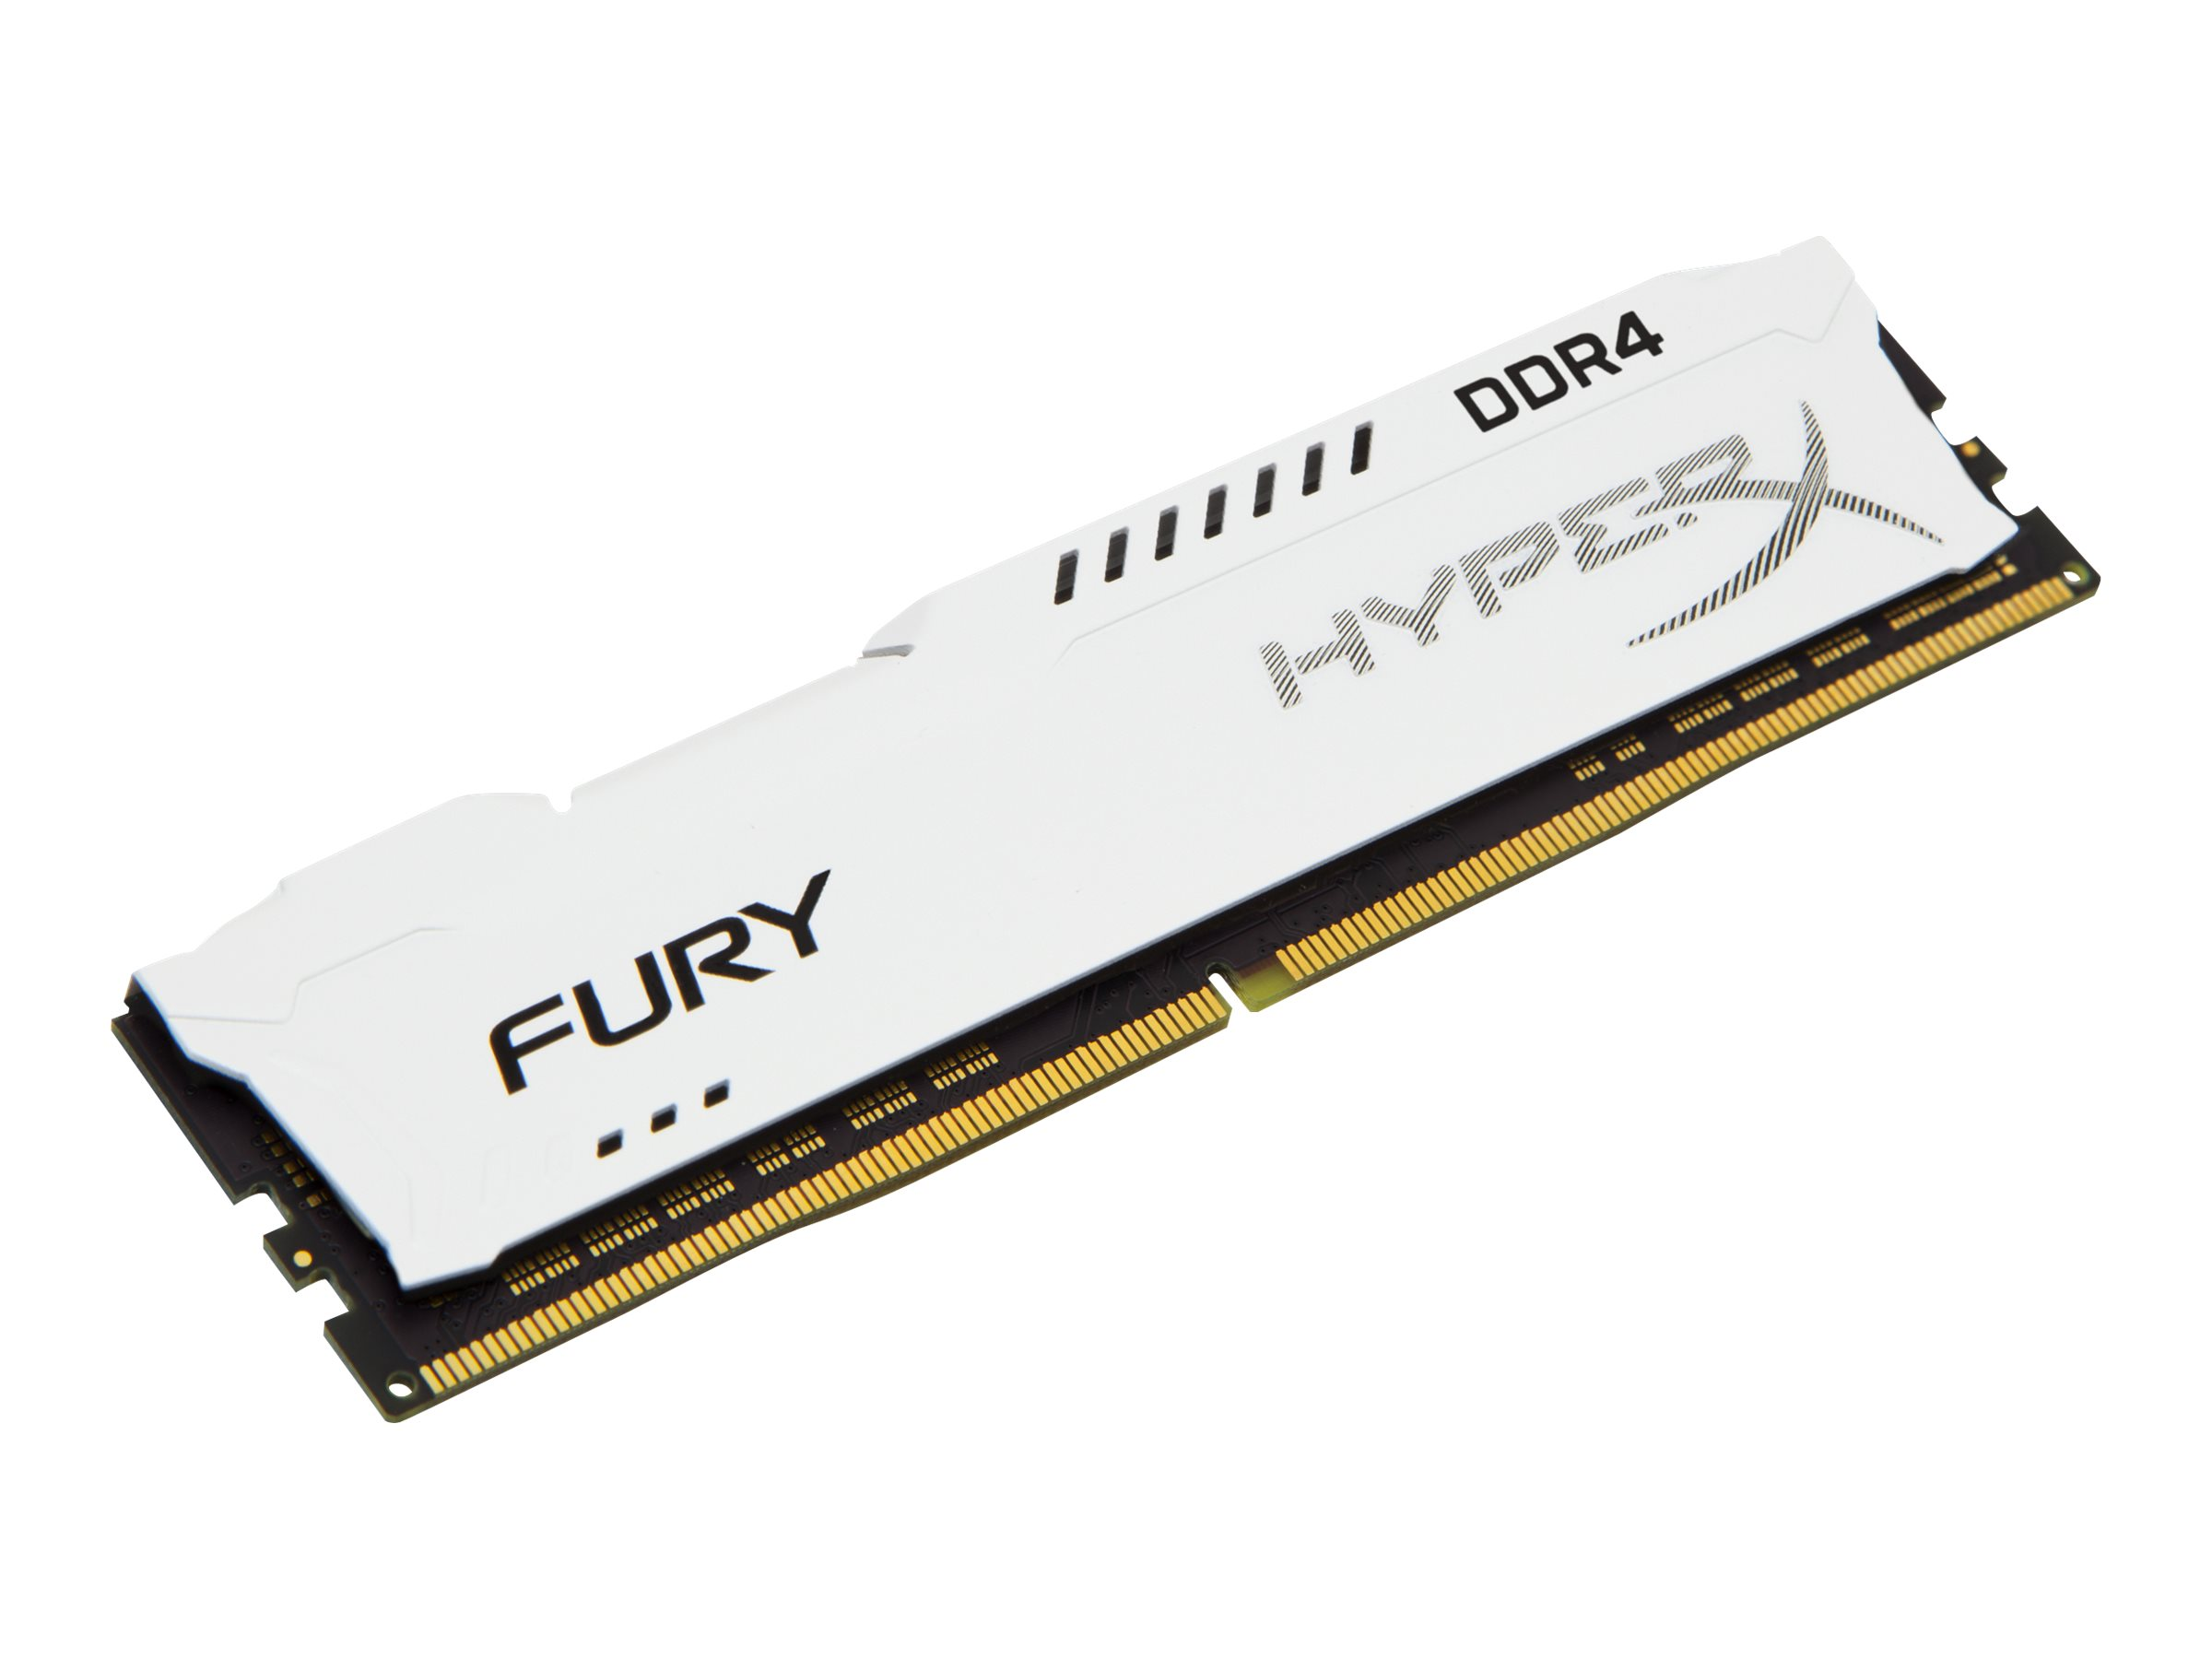 Kingston HyperX FURY - DDR4 - 16 GB - DIMM 288-PIN - 3200 MHz / PC4-25600 CL18 - 1.2 V - ungepuffert - non-ECC - weiß